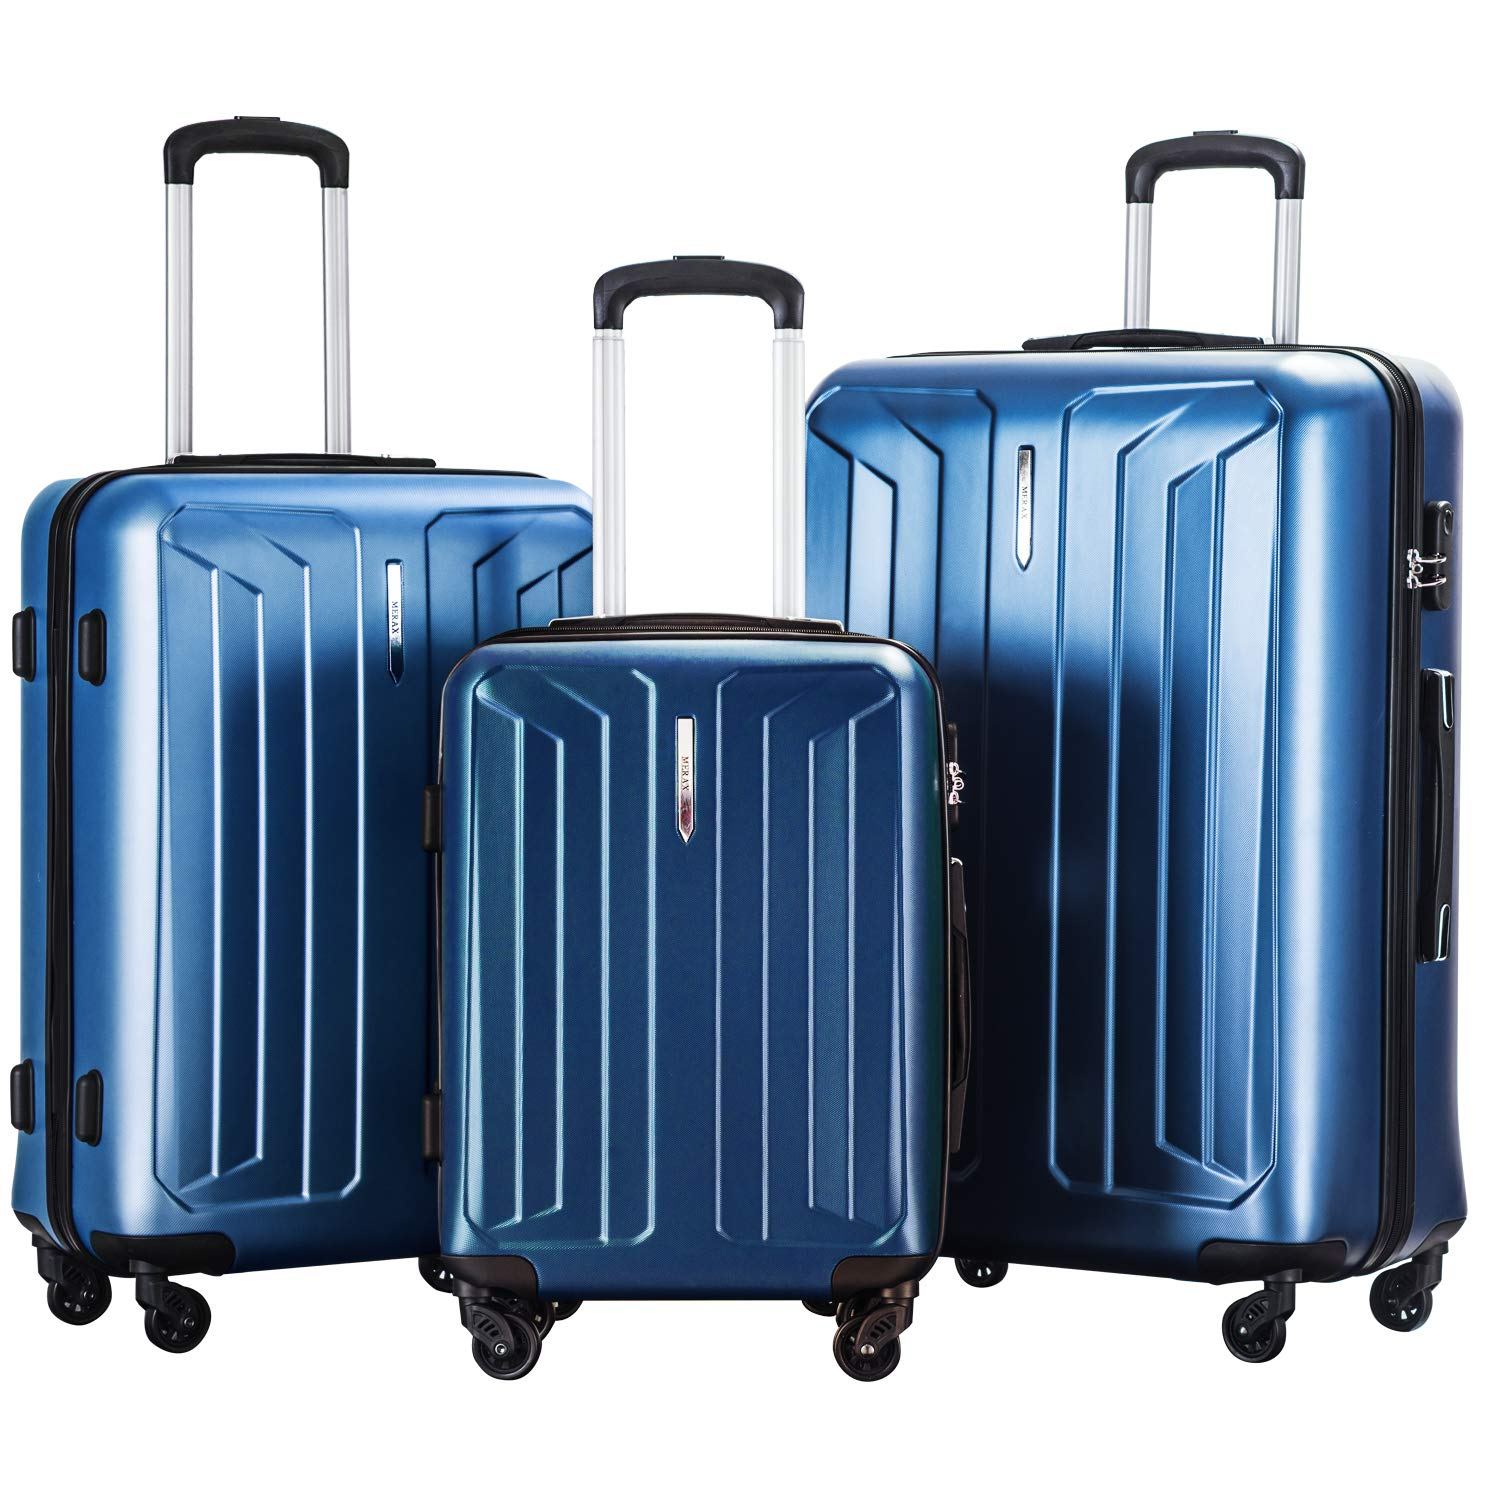 Luggage Set 3 Pieces Hard Shell Lightweight 4 Wheels Spinner Travel Trolley Suitcase Set (20+24+28) (Blue)